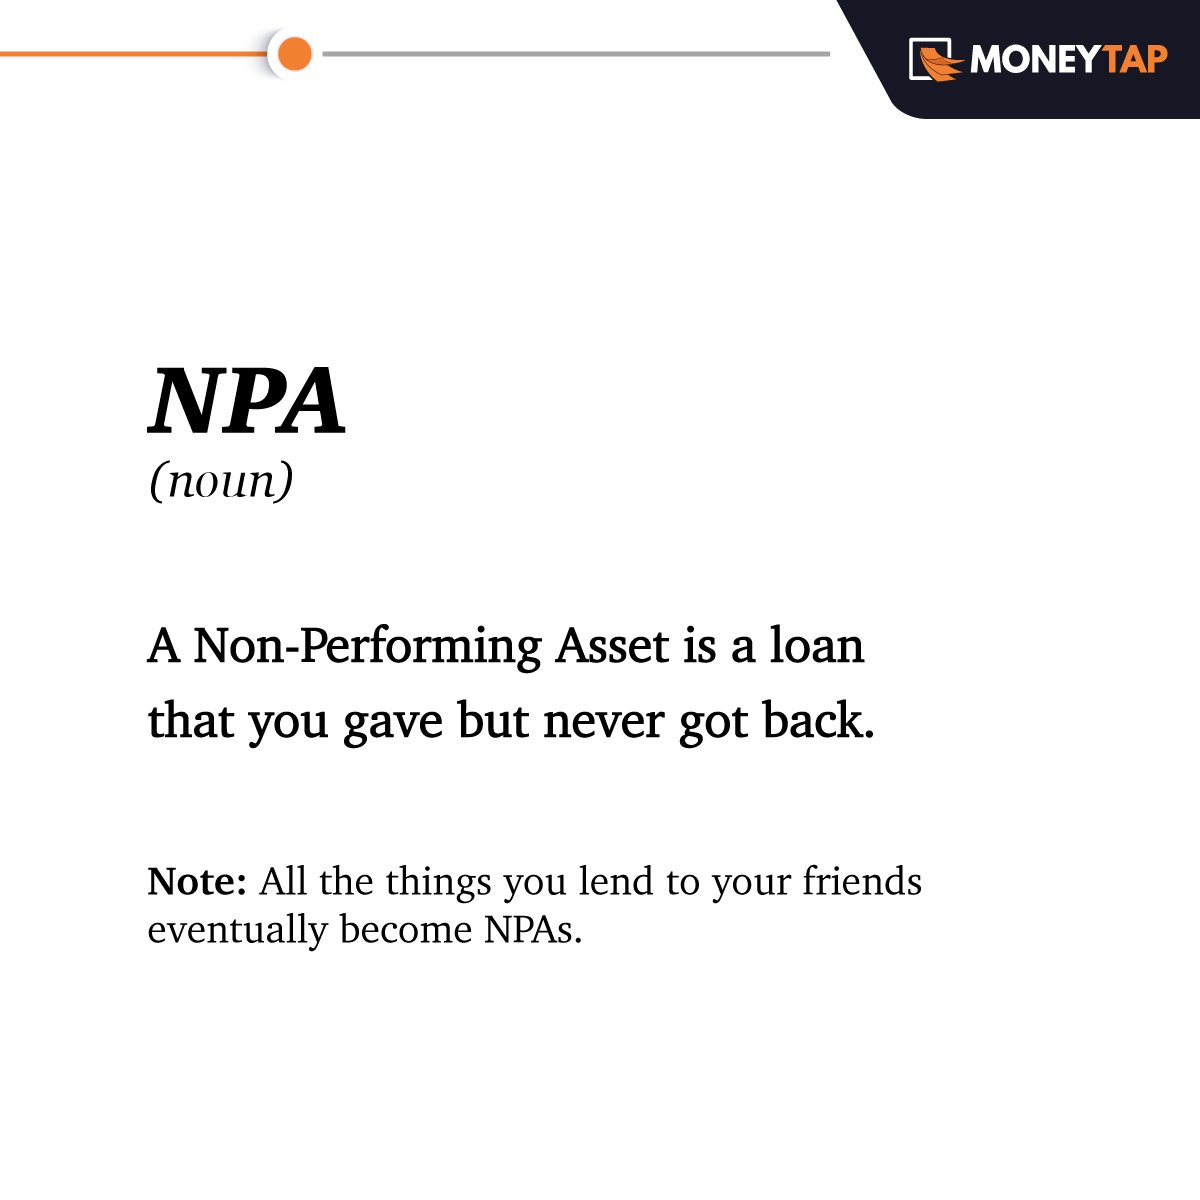 Here's another seemingly complex #finance term made easy with #VocabWithMoneyTap.  Usage - The lower the NPAs, the lower the losses for a lender.  #MoneyTap #Fintech #TuesdayThoughts #TuesdayMotivation<br>http://pic.twitter.com/ybylX4tcnJ